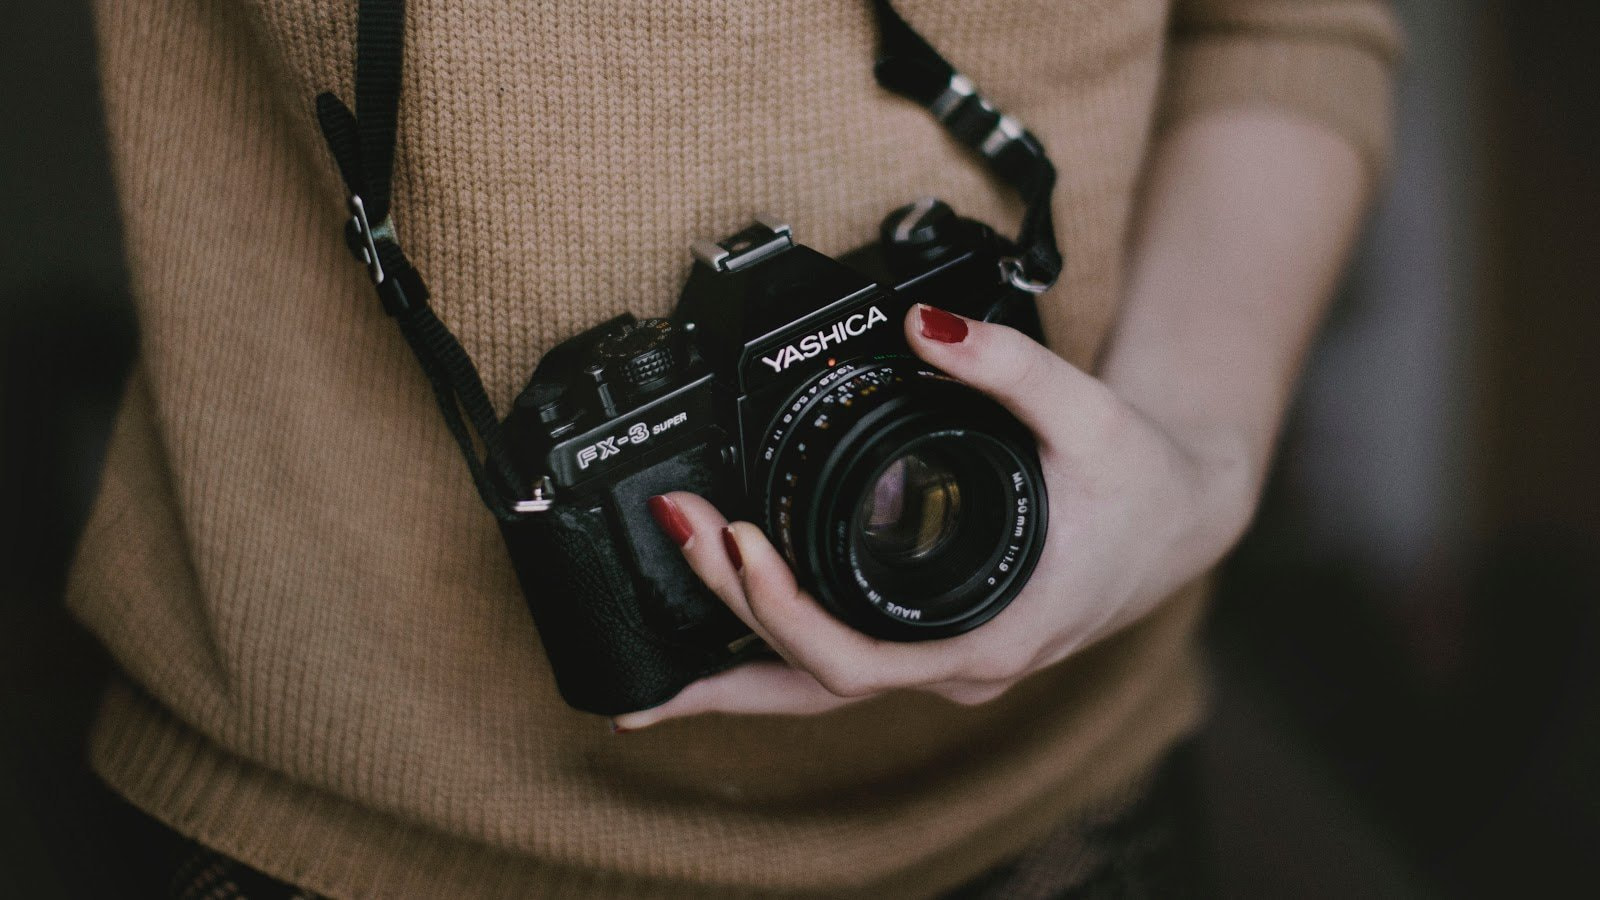 Closeup shot of Yashica camera being held by a woman photo by Mia Domenico